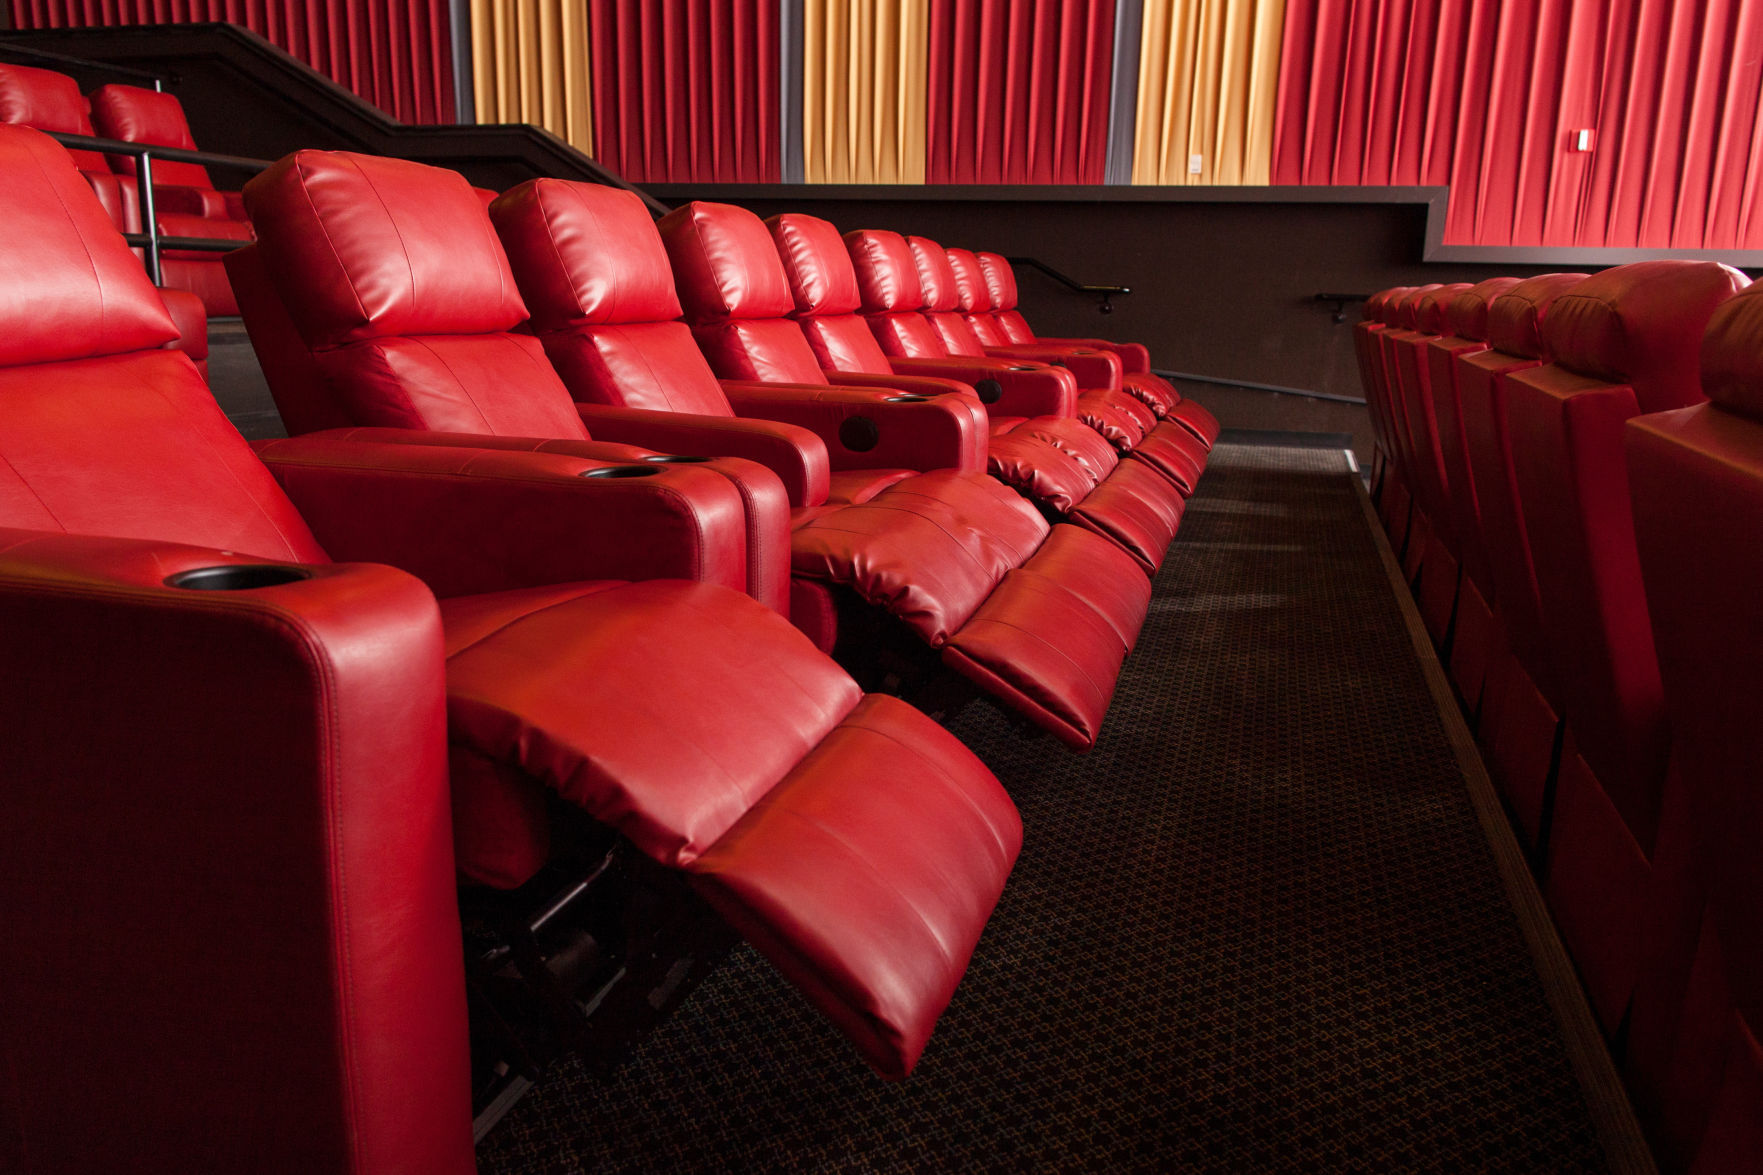 Reclining Chair Movie Theater Heated Recliners New Screens Better Food Coming To Marcus